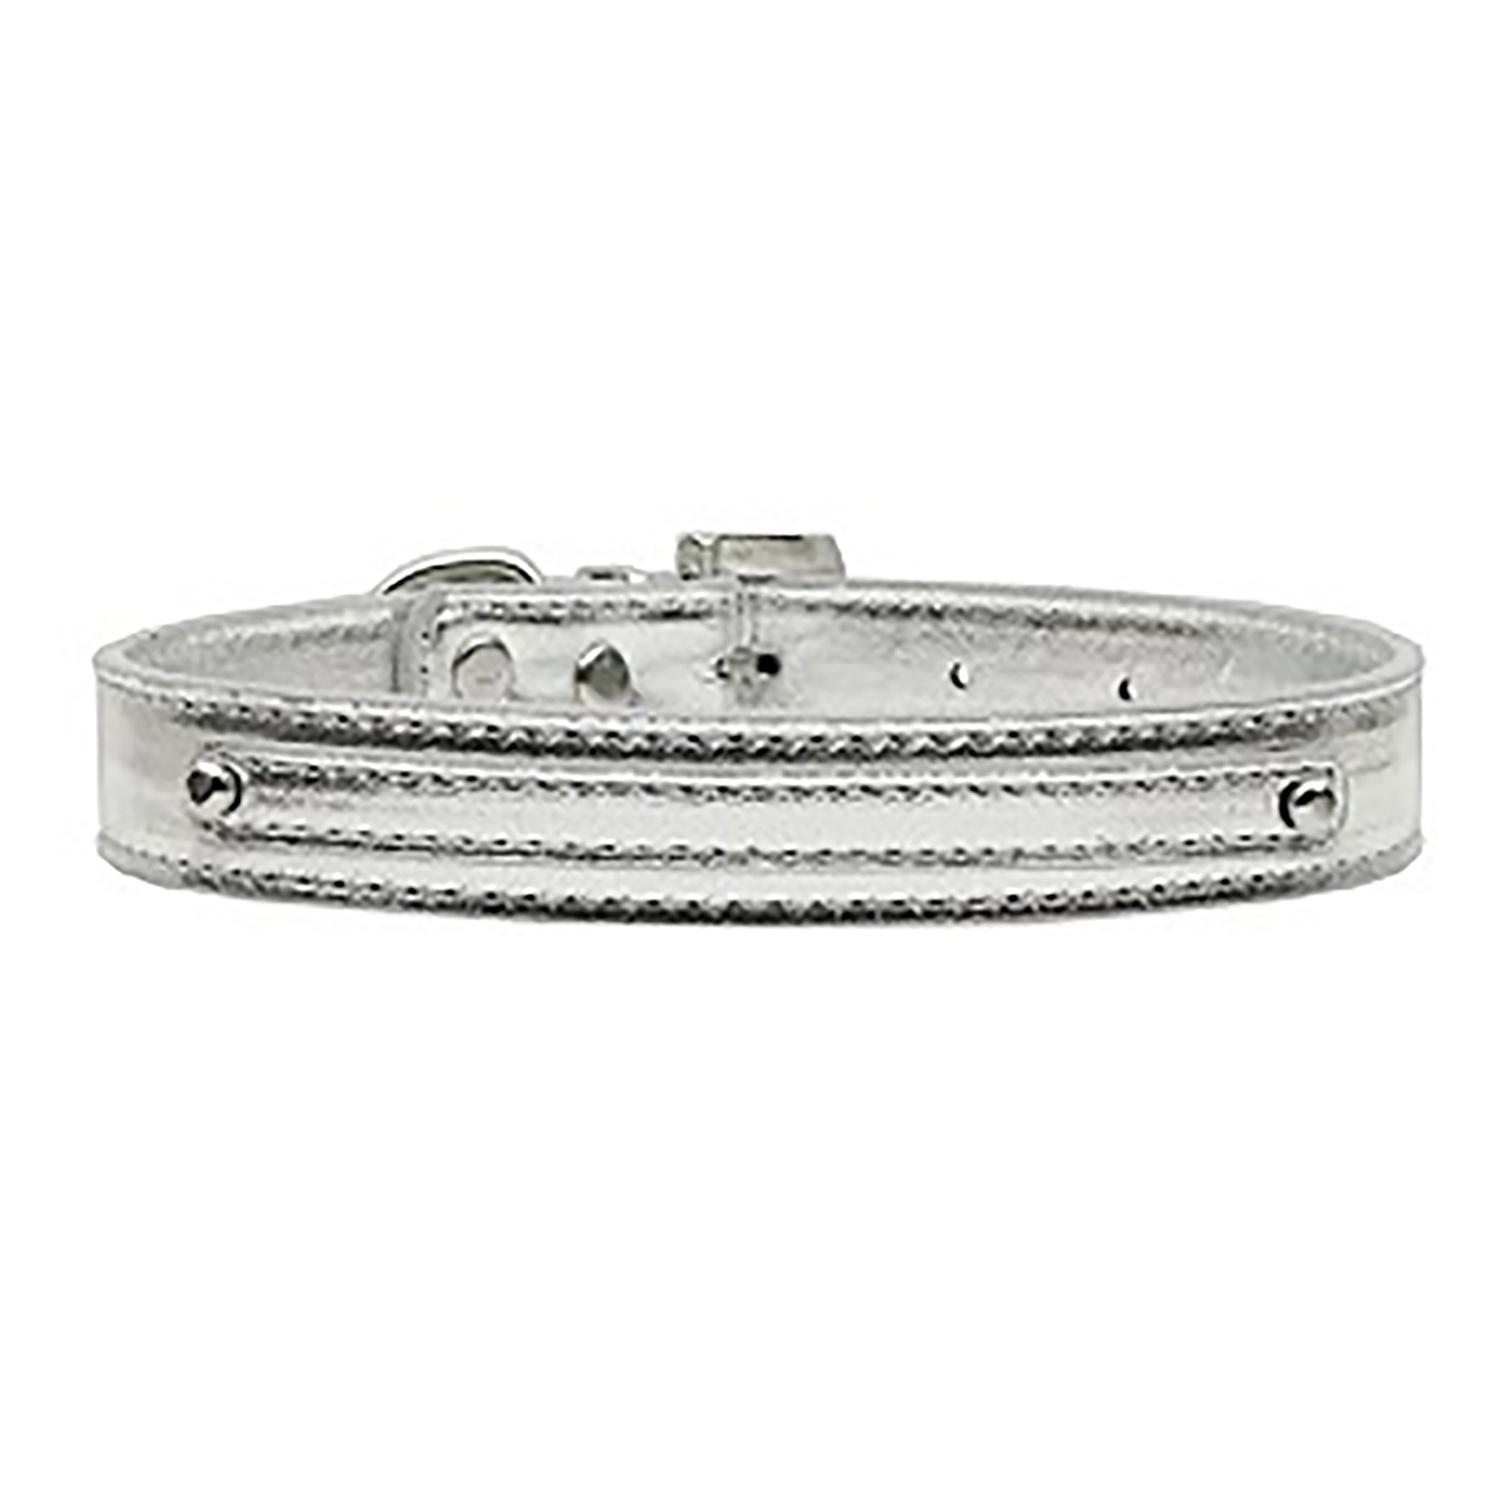 Metallic Two Tiered Dog Collar with 10MM Letter Strap - Silver